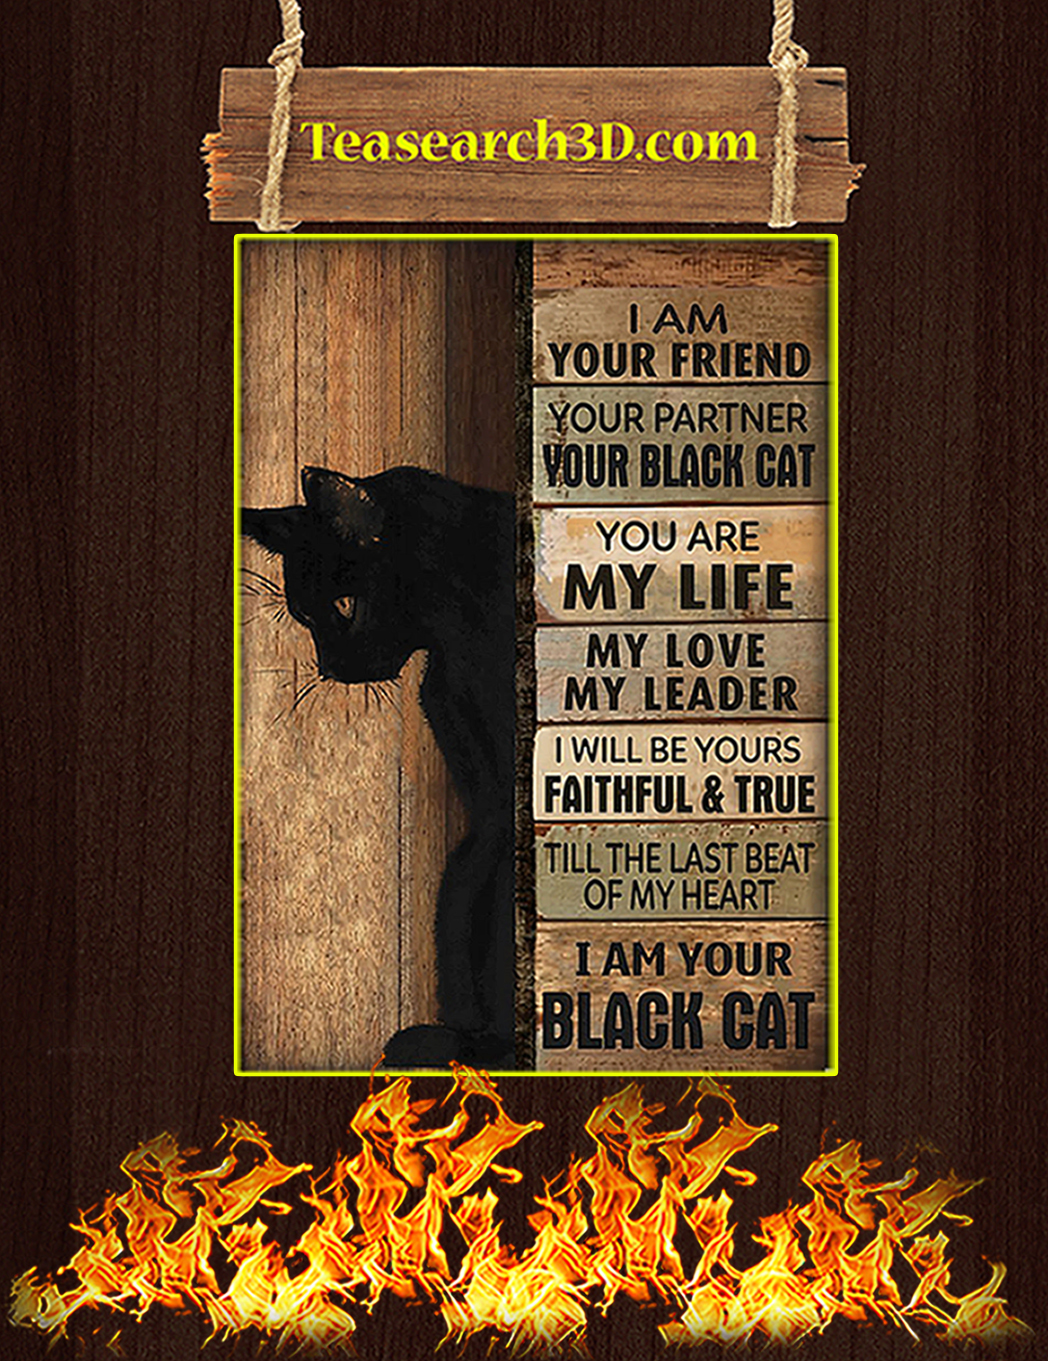 I am your friend your partner your black cat poster A1